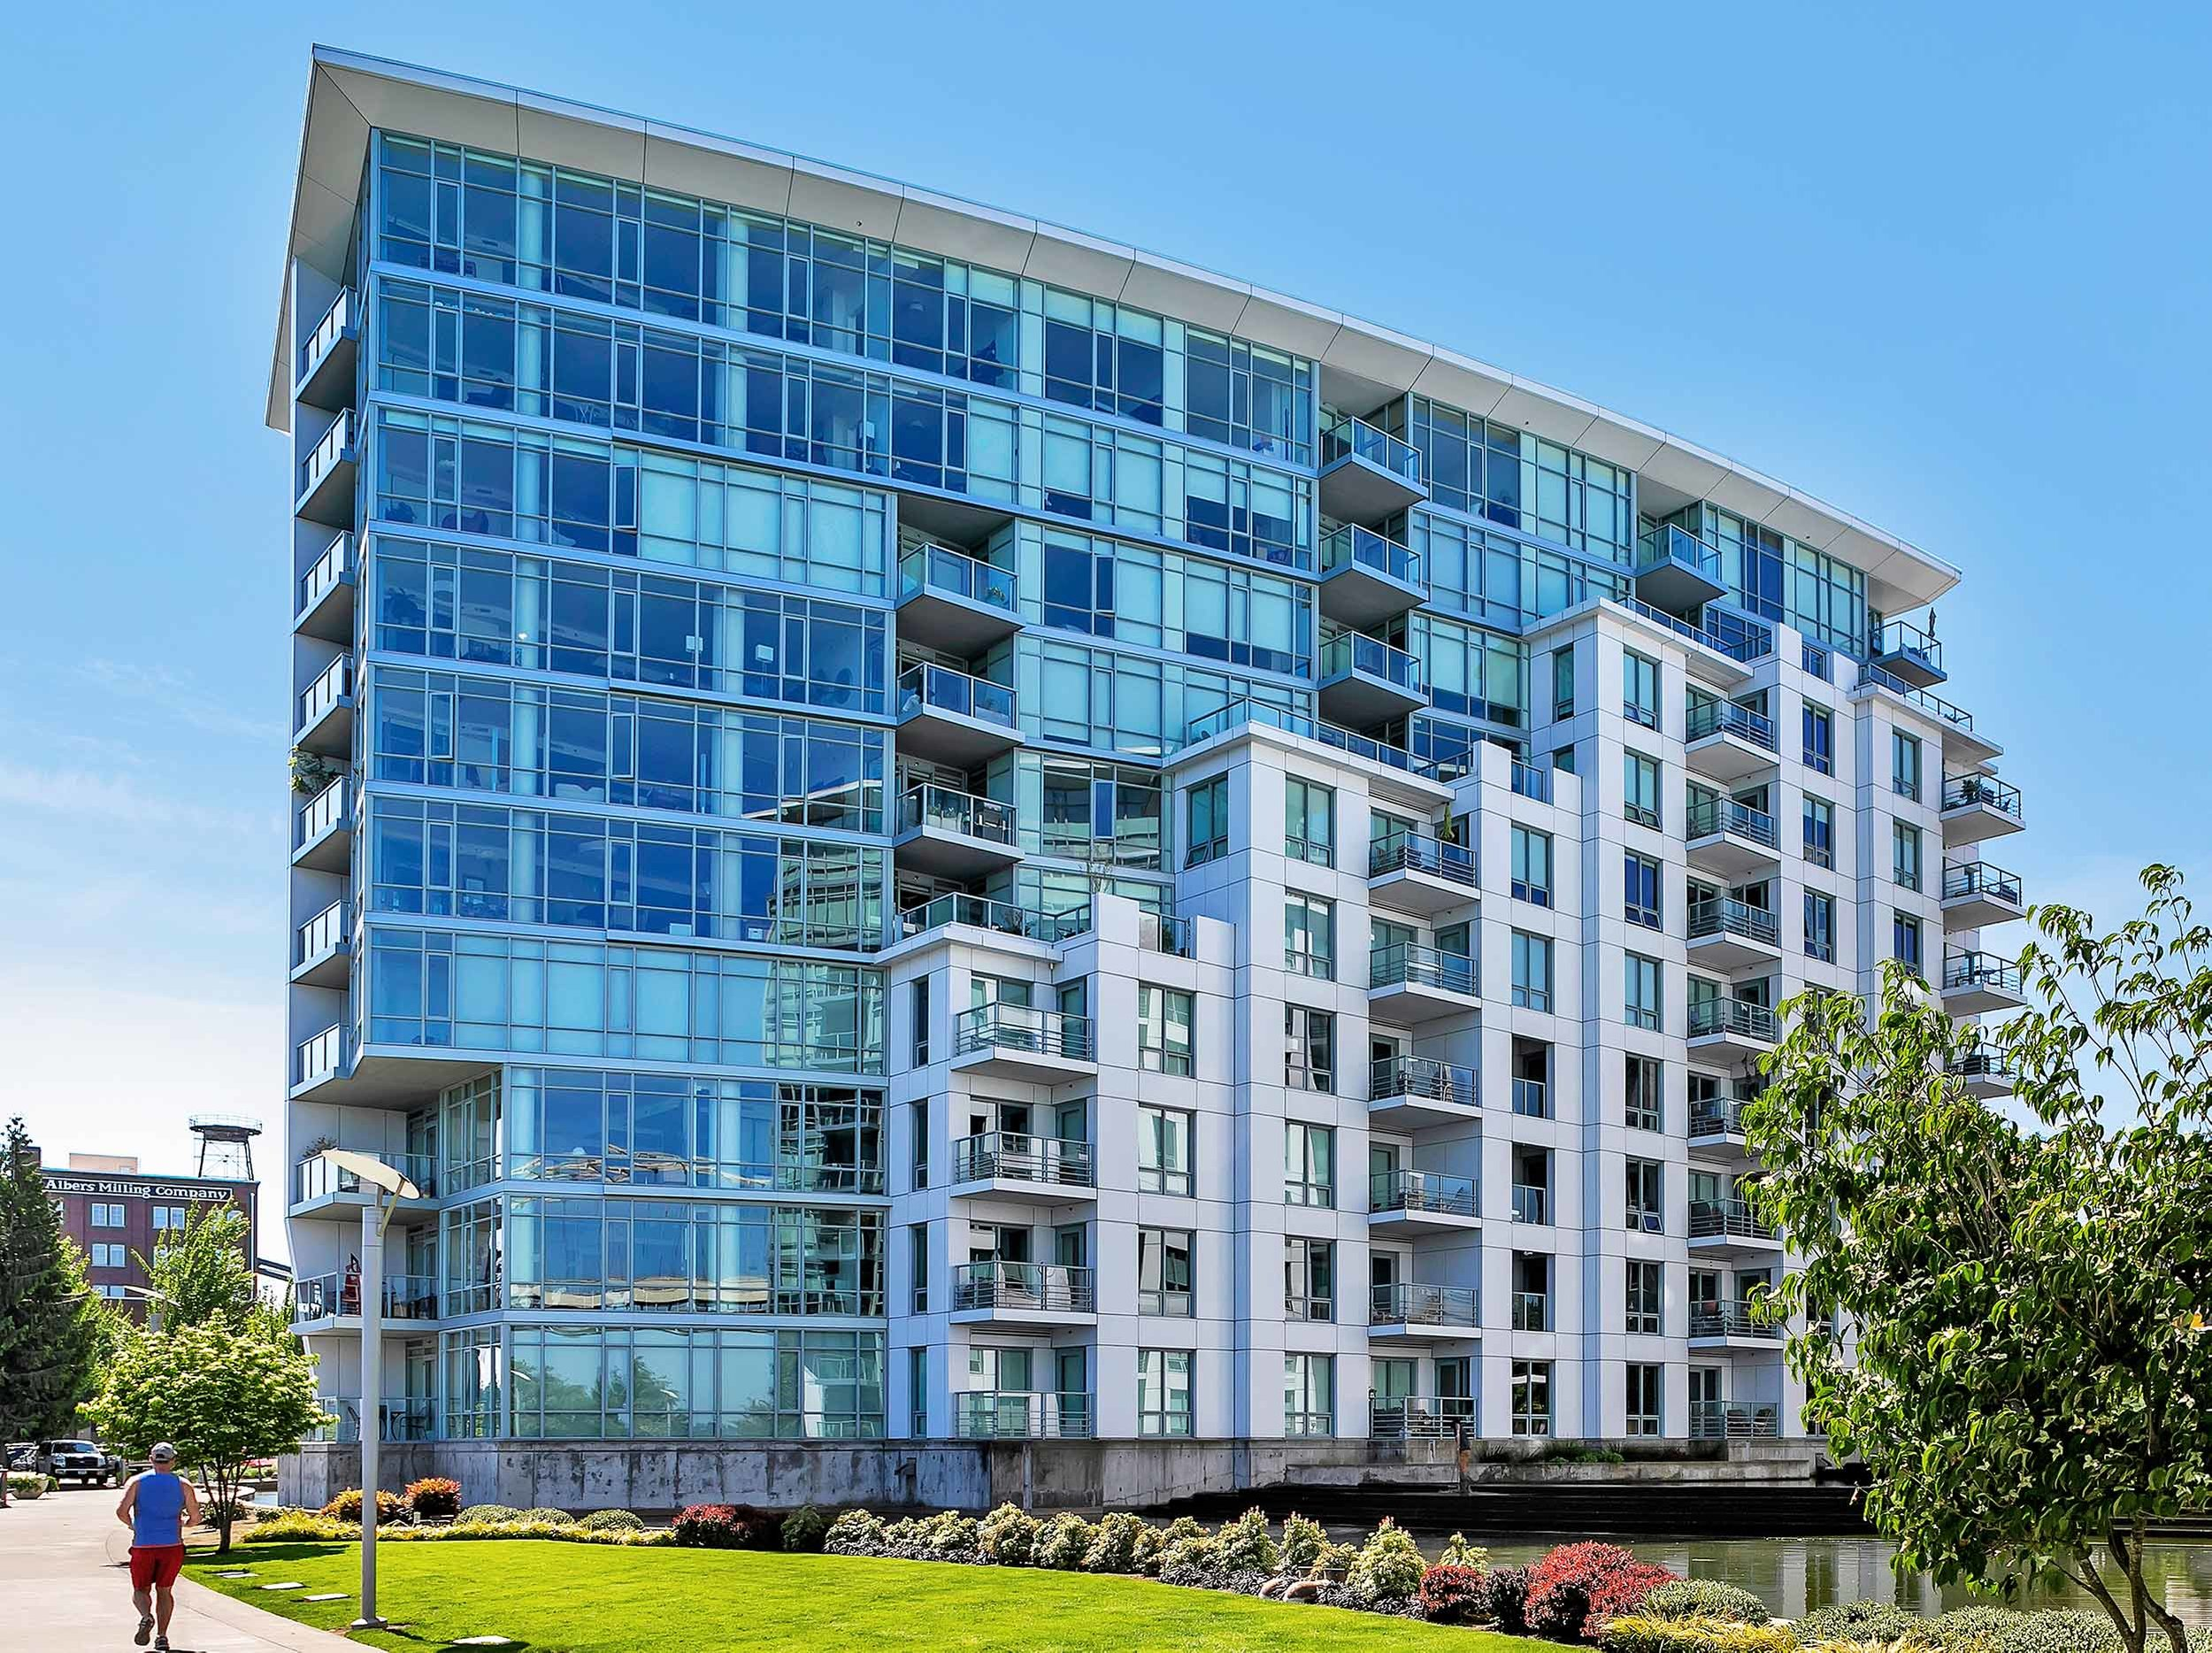 The Waterfront Pearl located on the banks of the Willamette river in the Pearl District